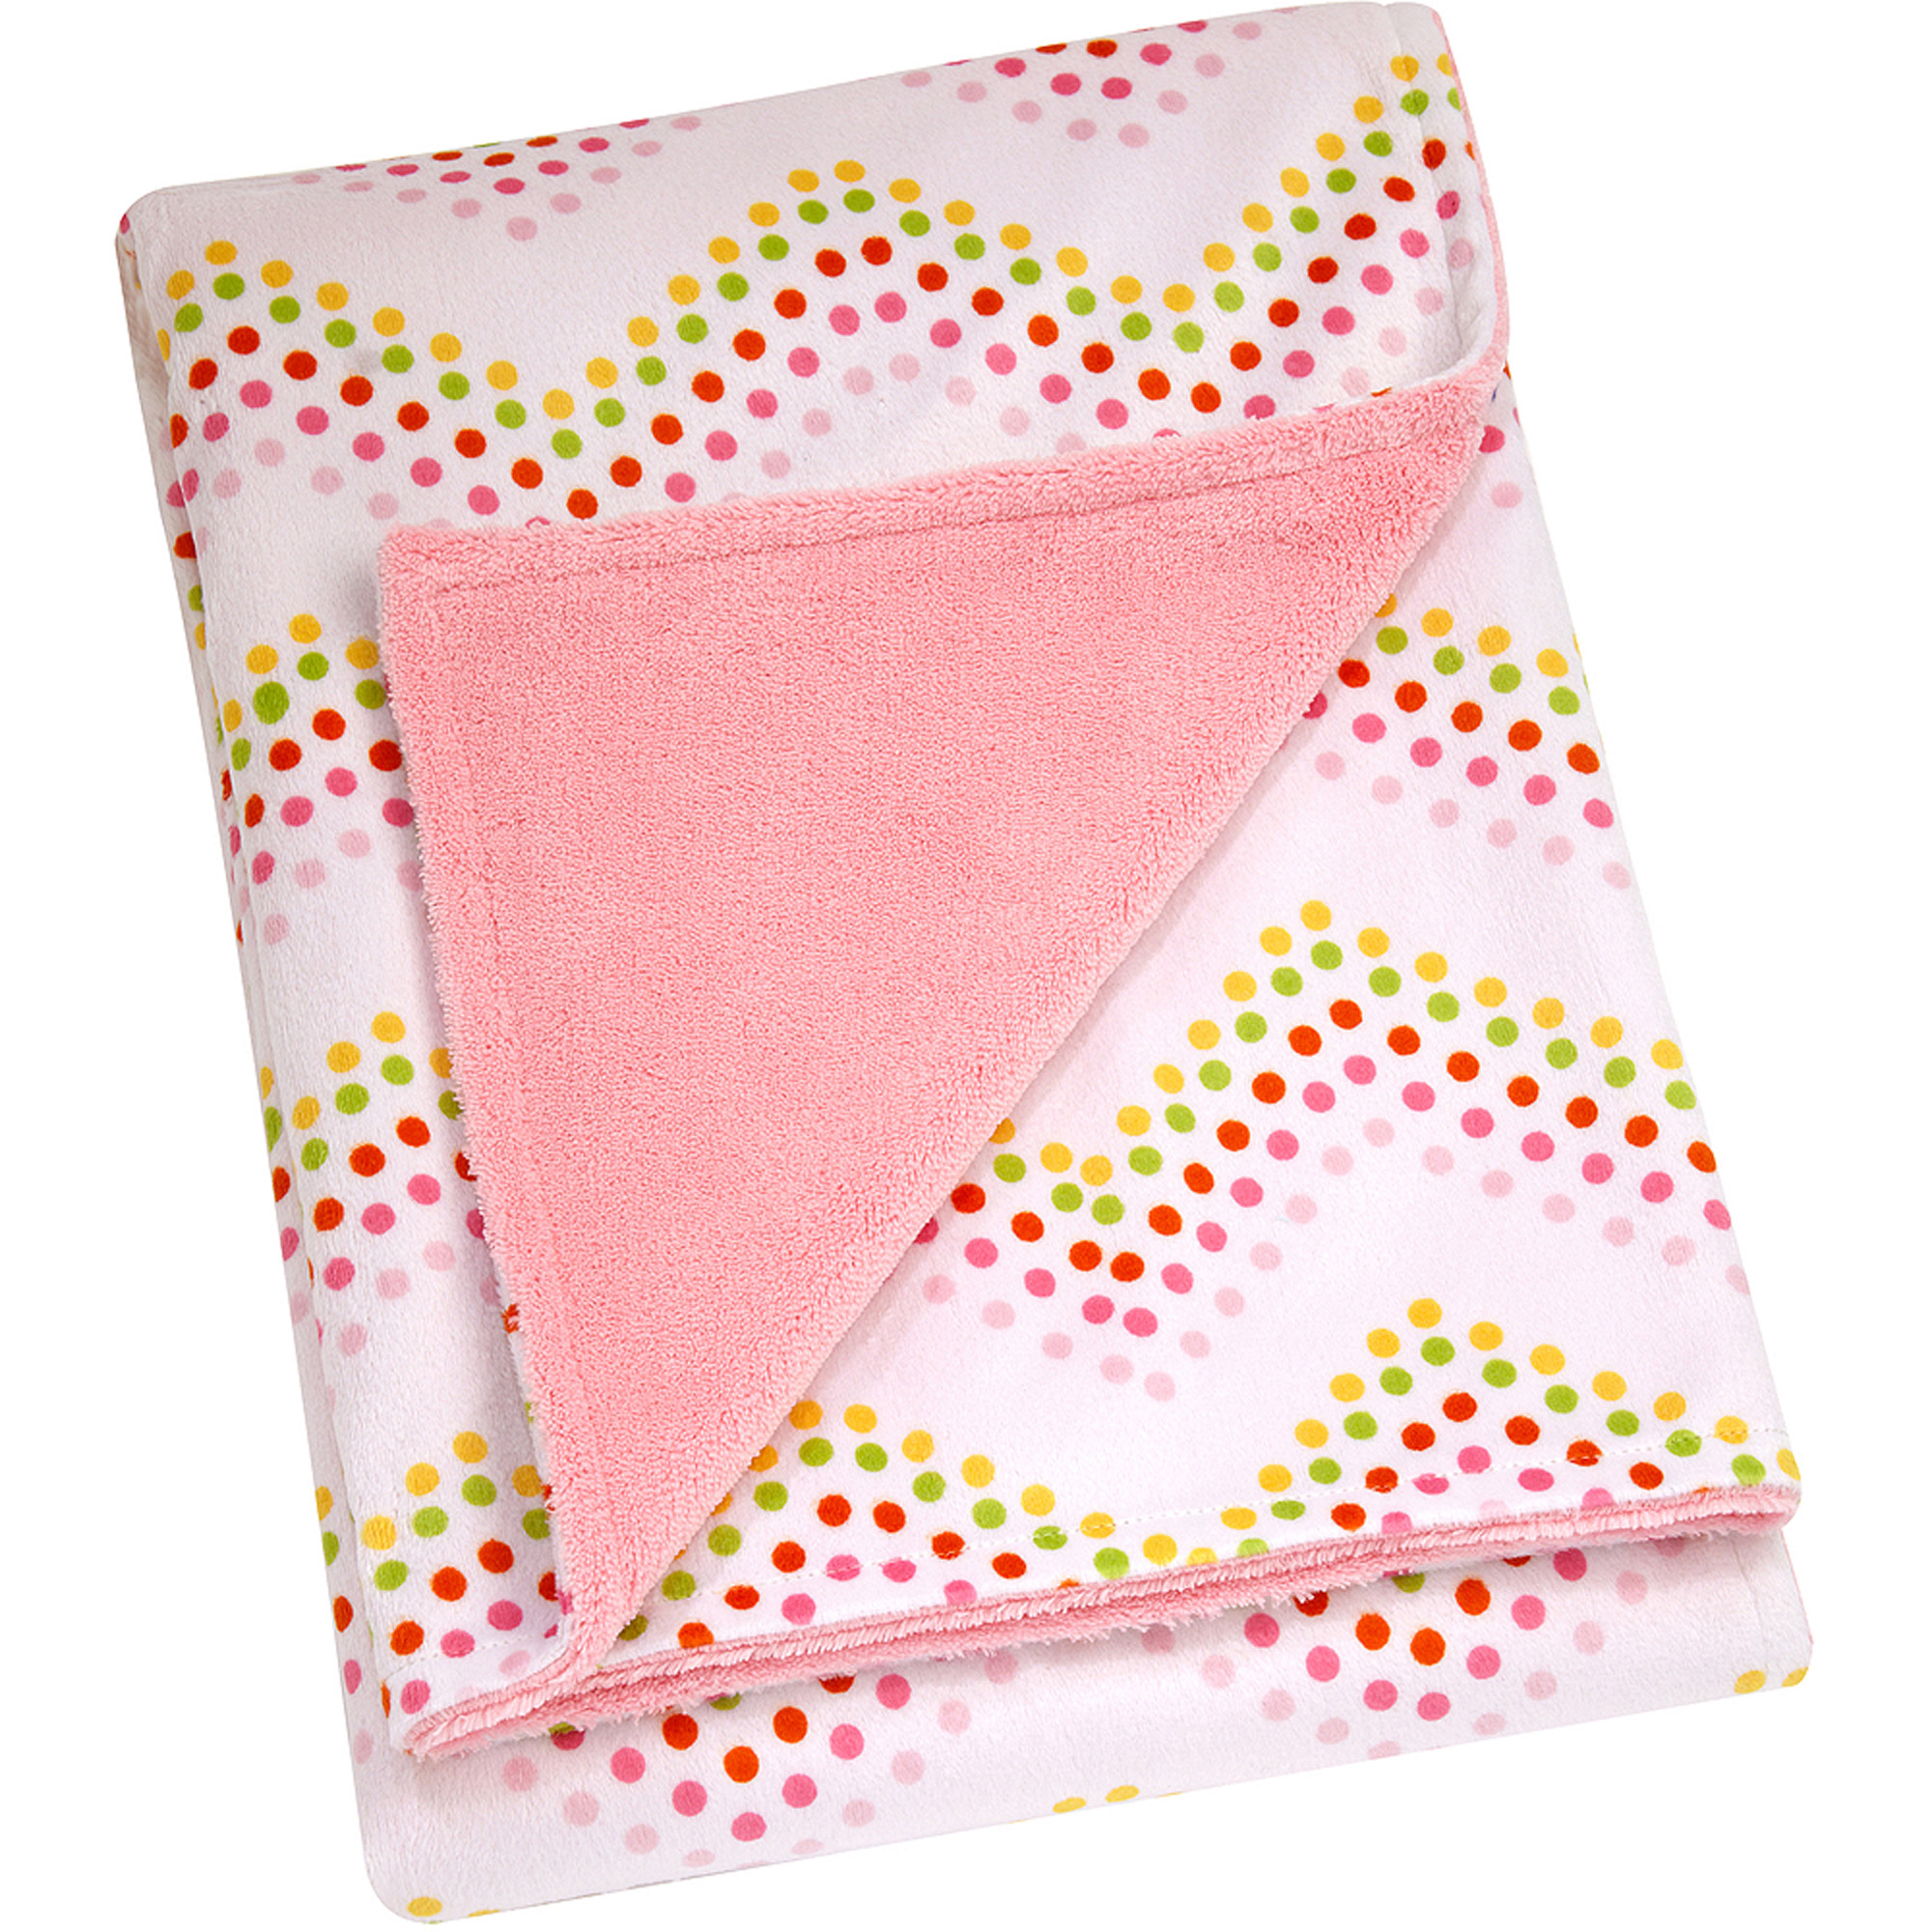 Little Bedding by Nojo Floral Fusion Printed Velboa Blanket, Chevron Dot, Girl